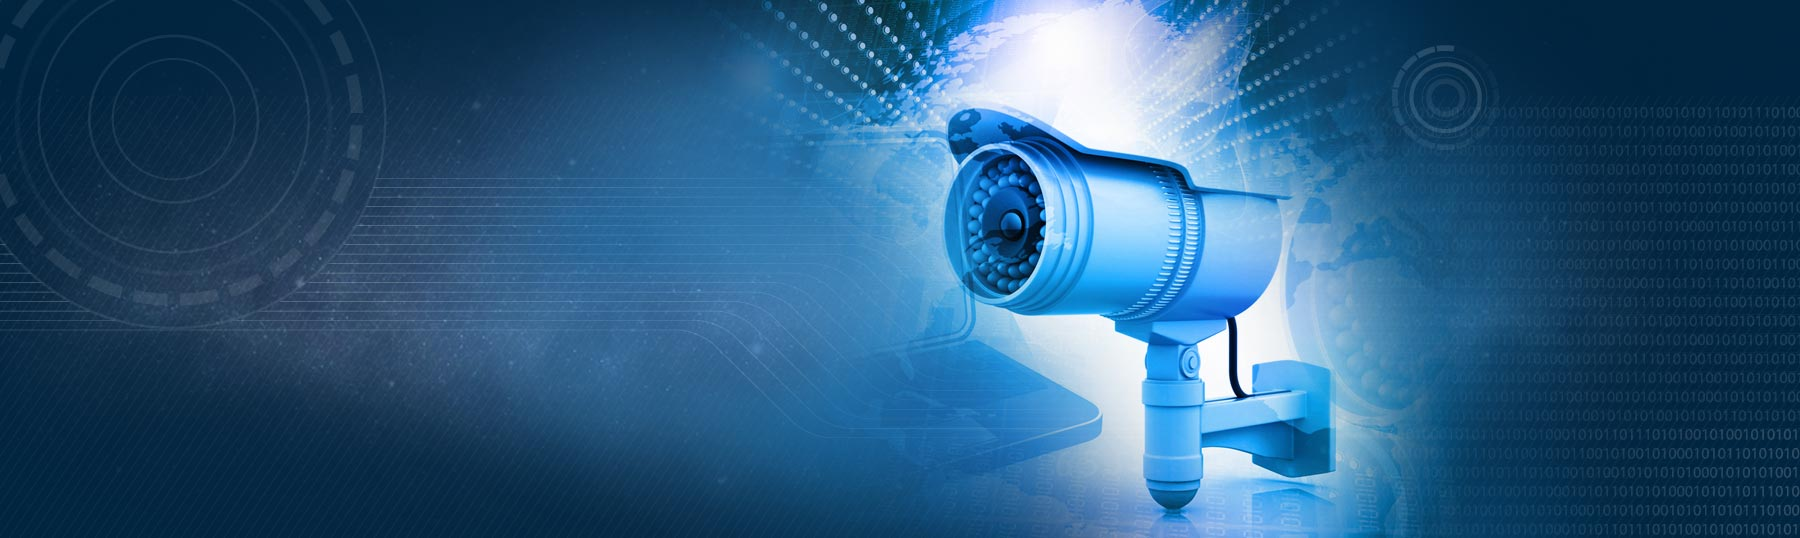 Video Surveillance | GC&E Systems Group